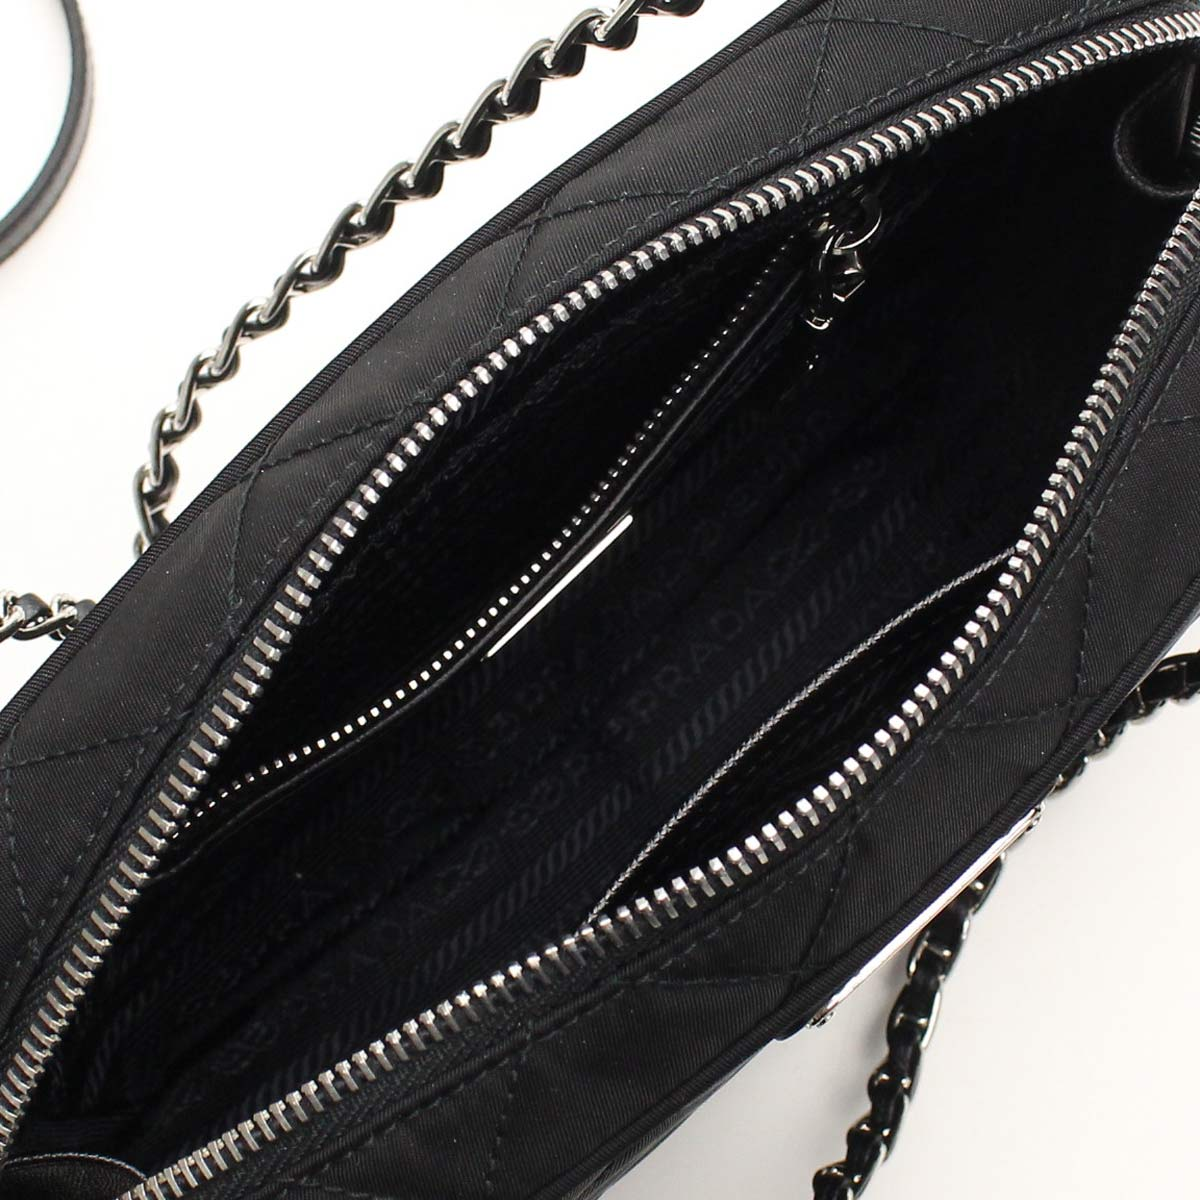 1BH910-O-2AS3-F0002 NERO black Prada outlet PRADA (OUTLET)( taxfree/send by EMS/authentic/A brand new item )